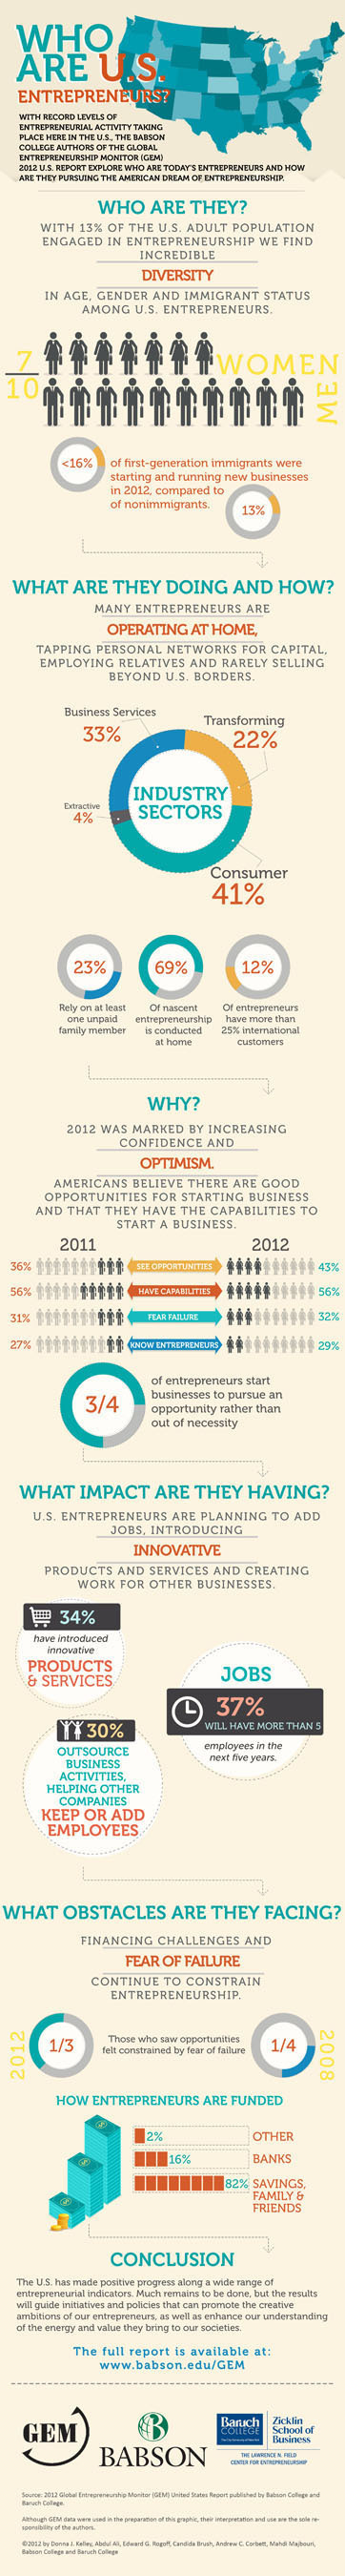 U.S. Entrepreneurship Rates Reach Highest Level In More Than A Decade According To Researchers At Babson College And Baruch College.  (PRNewsFoto/Babson College)